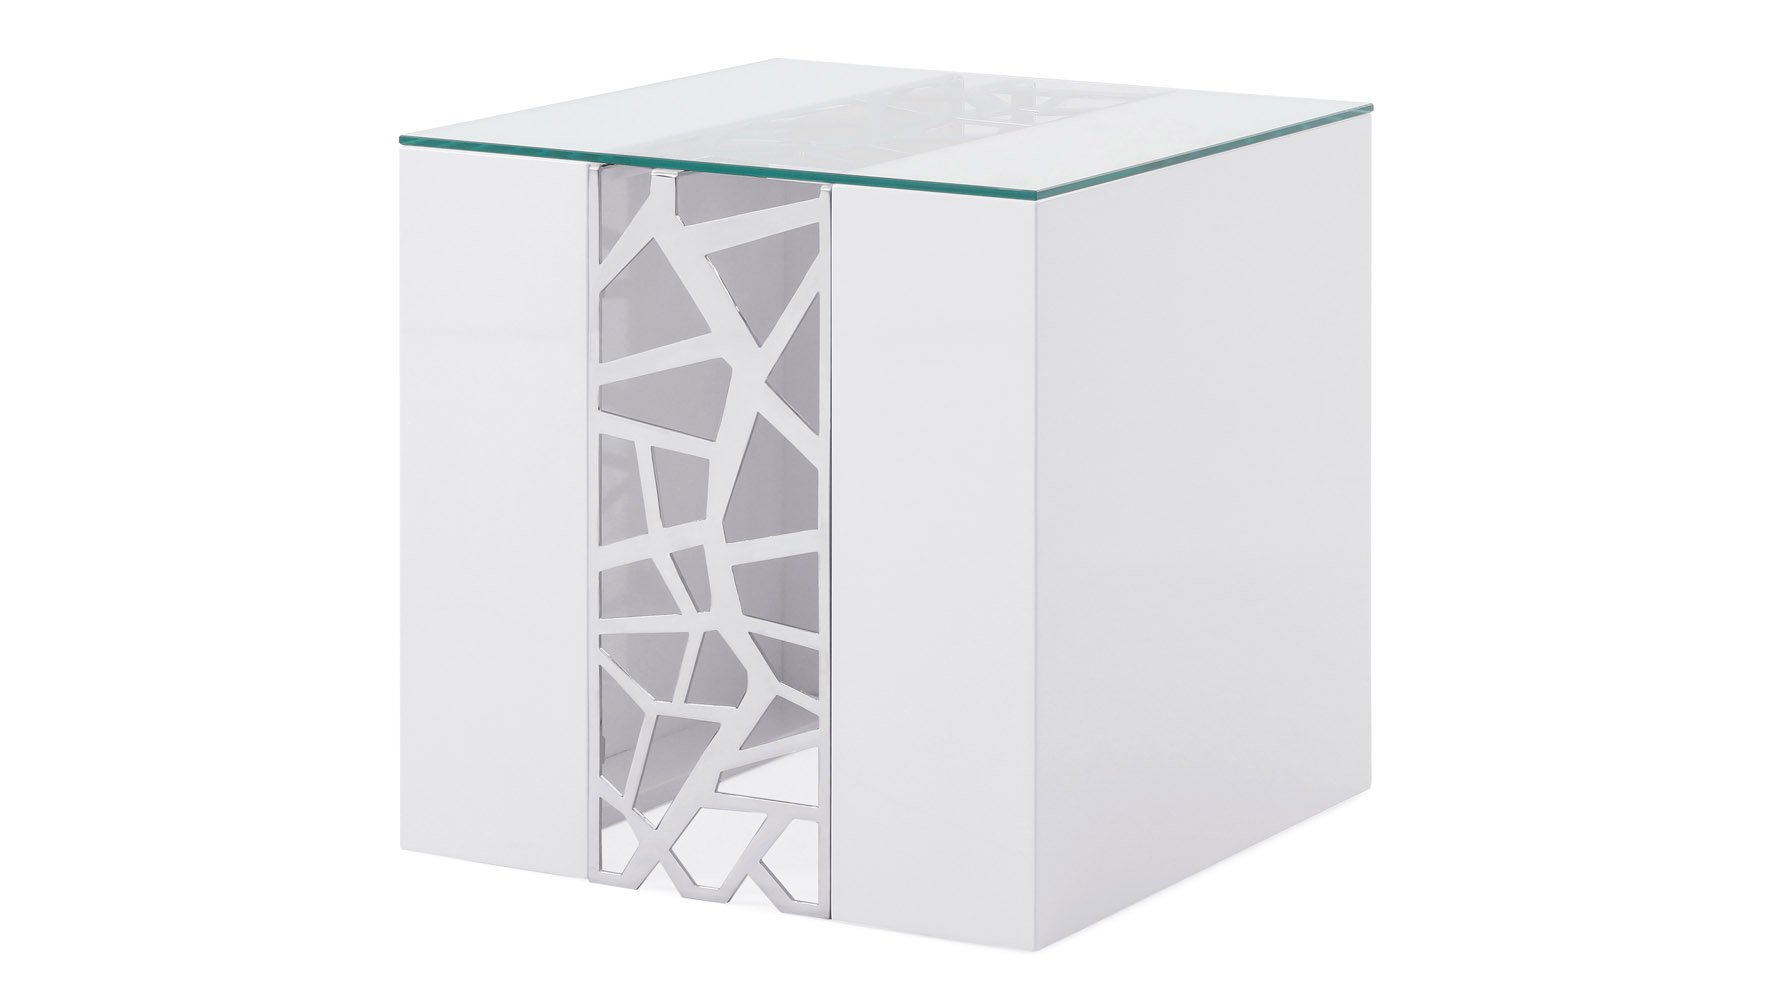 products wood lacquer material accent tables living liera end table white zuri furniture antique fold out decorating console entryway bath and beyond floor lamps wilcox bbq prep